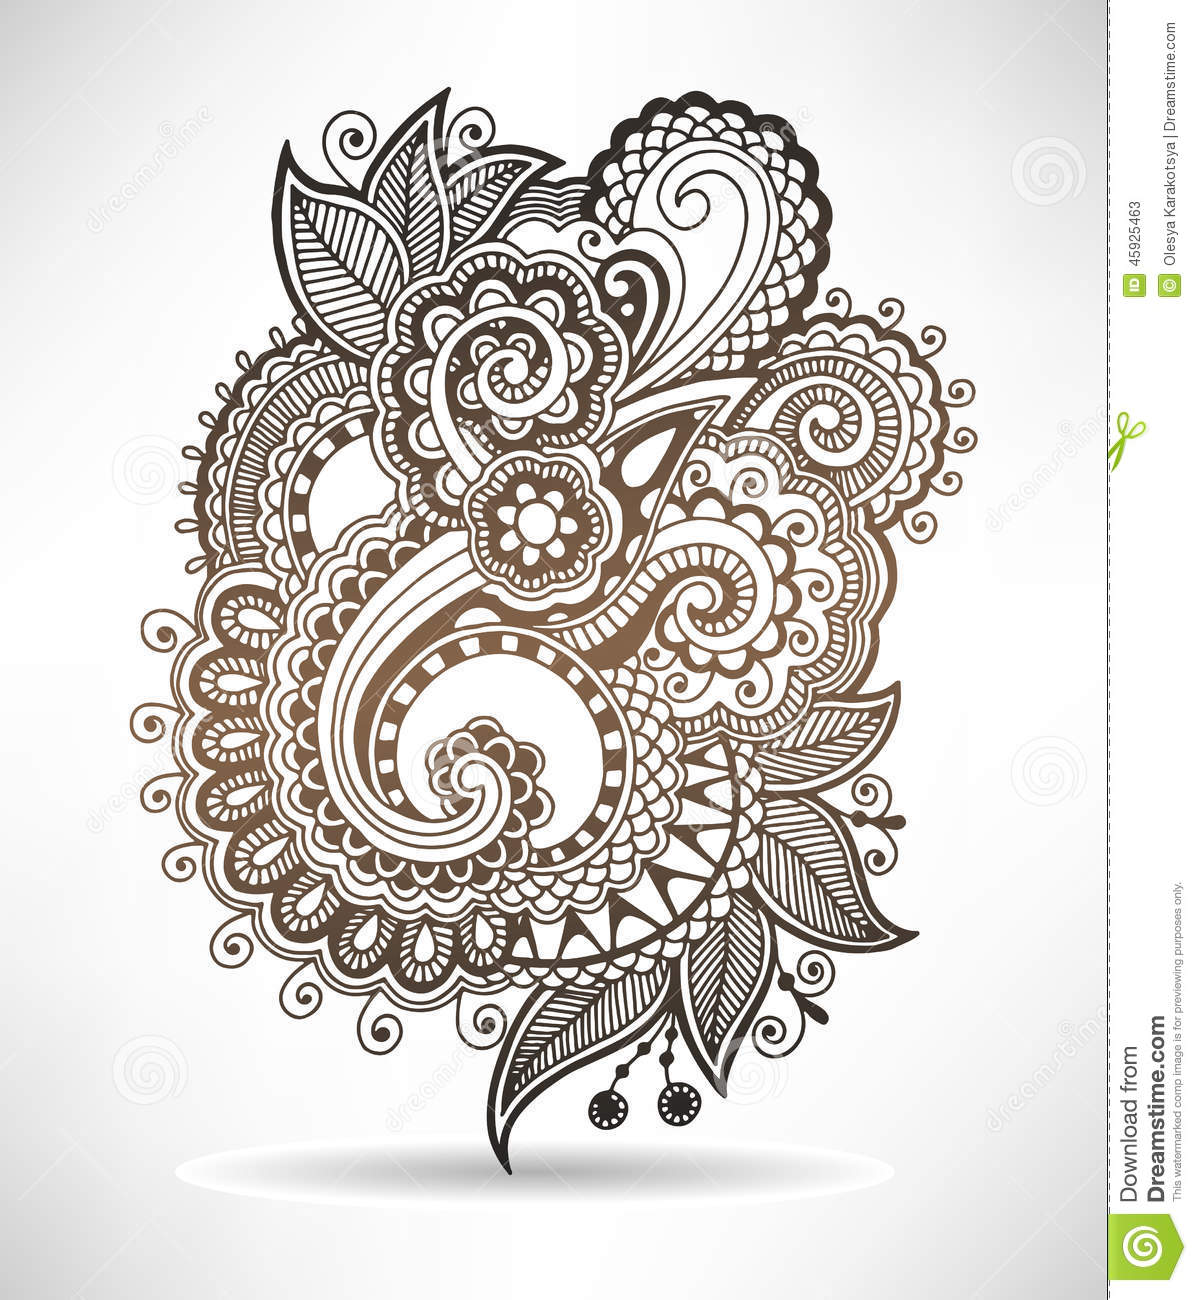 Floral Art Line Design : Line art ornate flower design ukrainian ethnic stock